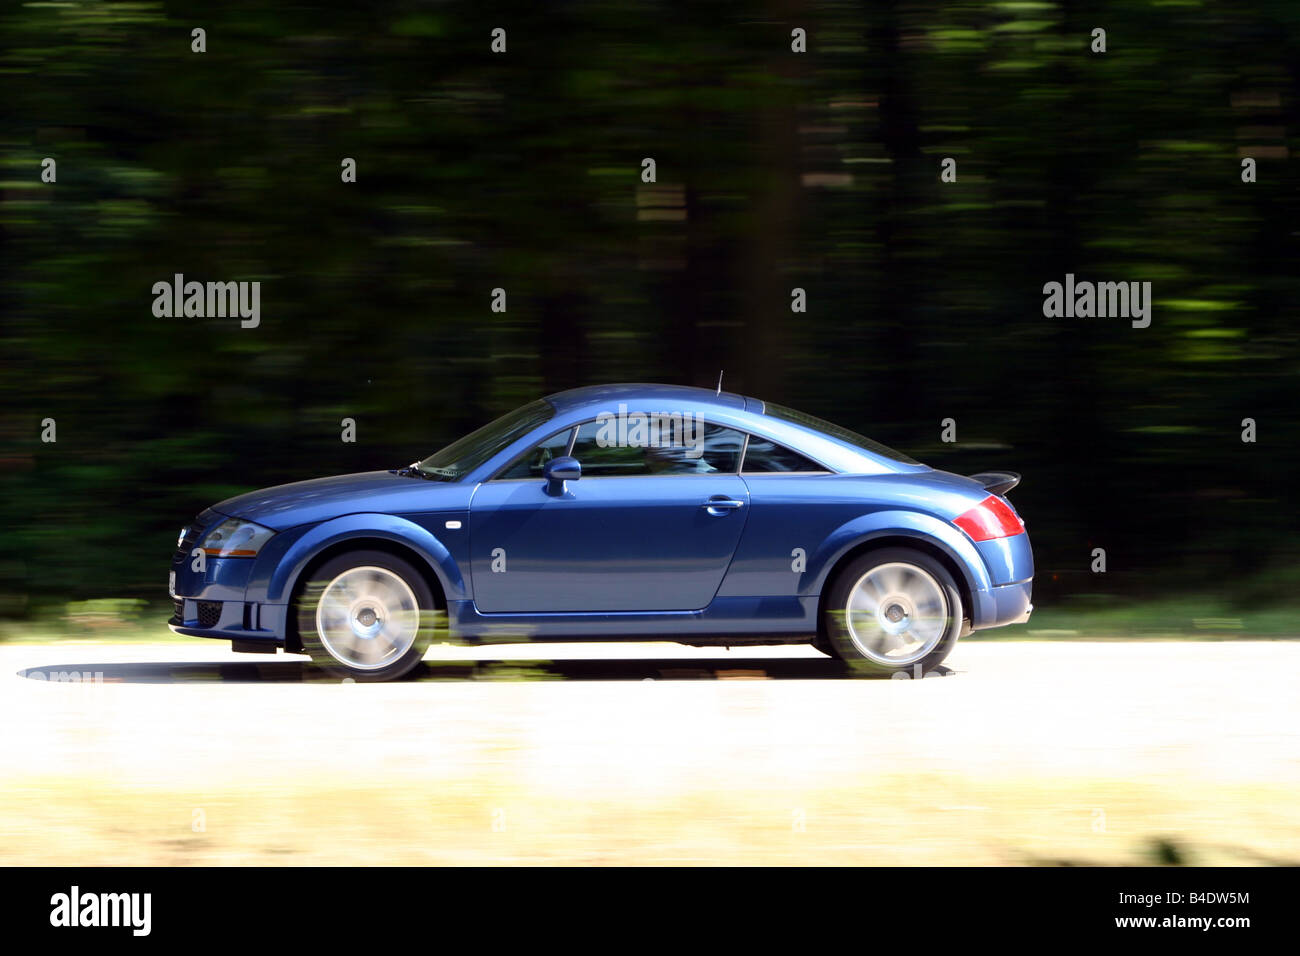 Car, Audi TT 3.2, coupe, roadster, model year 2003-, blue moving, country road, side view Stock Photo